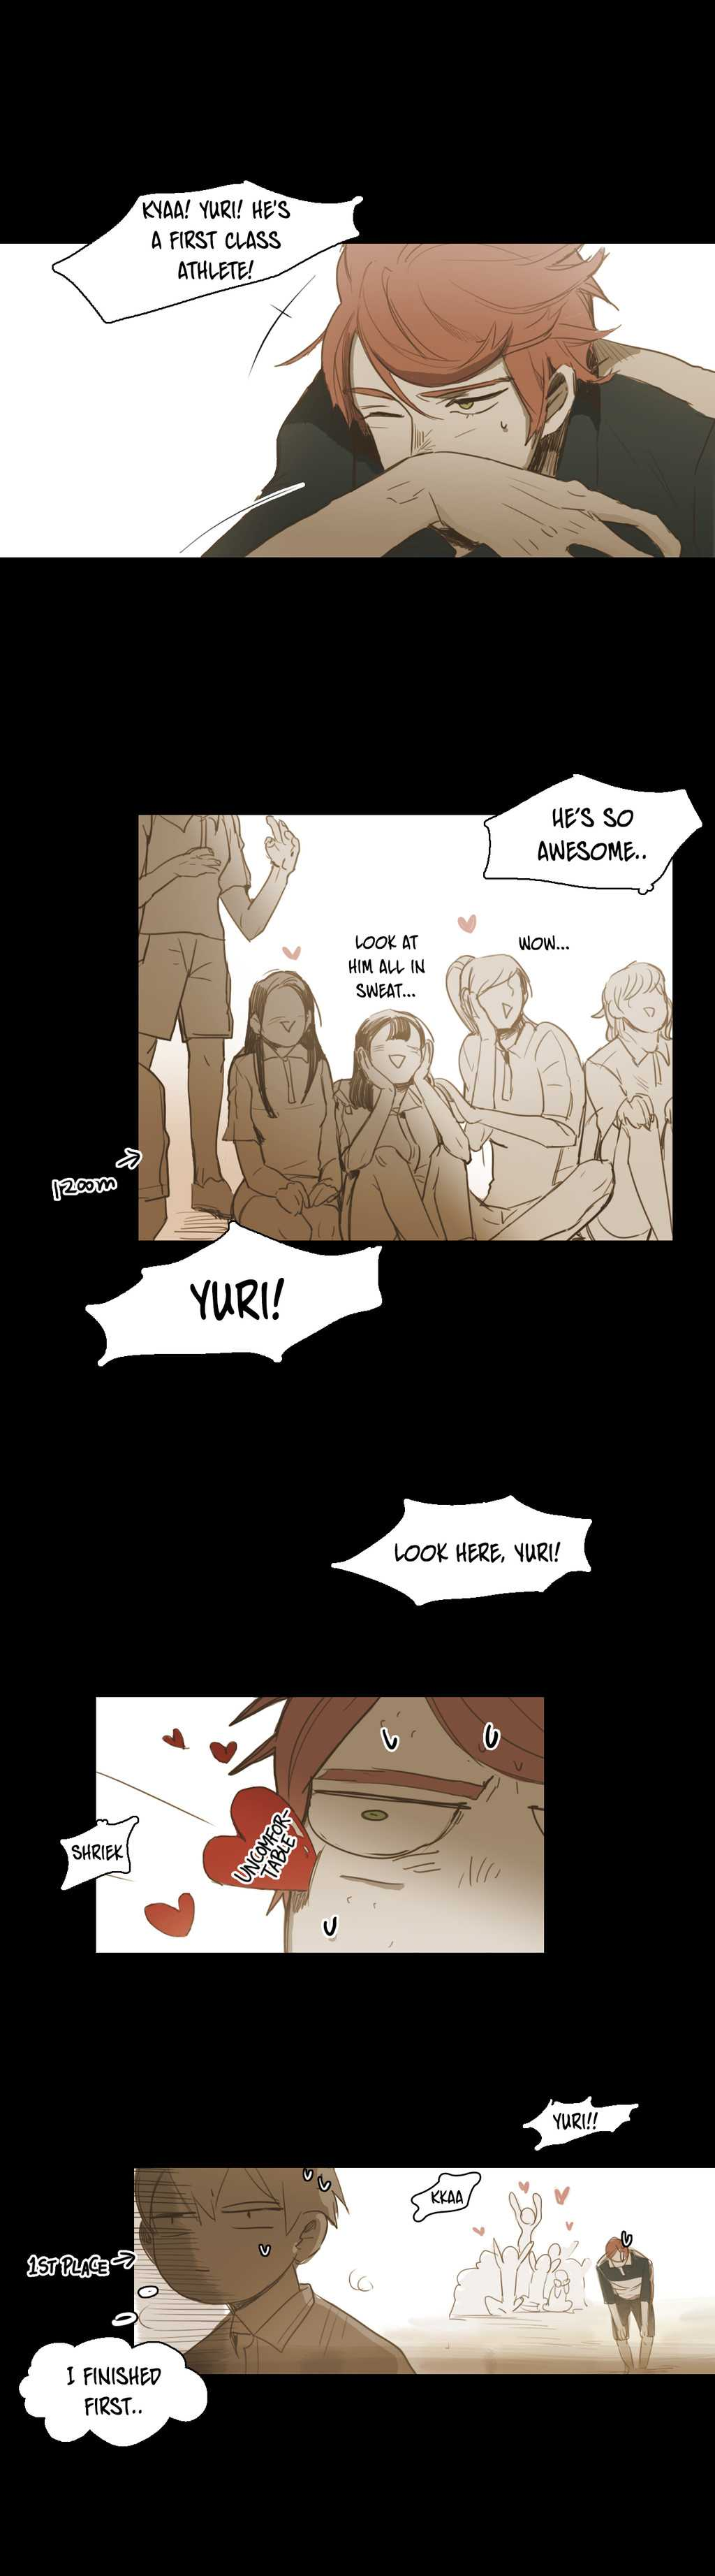 Never Understand - Chapter 30